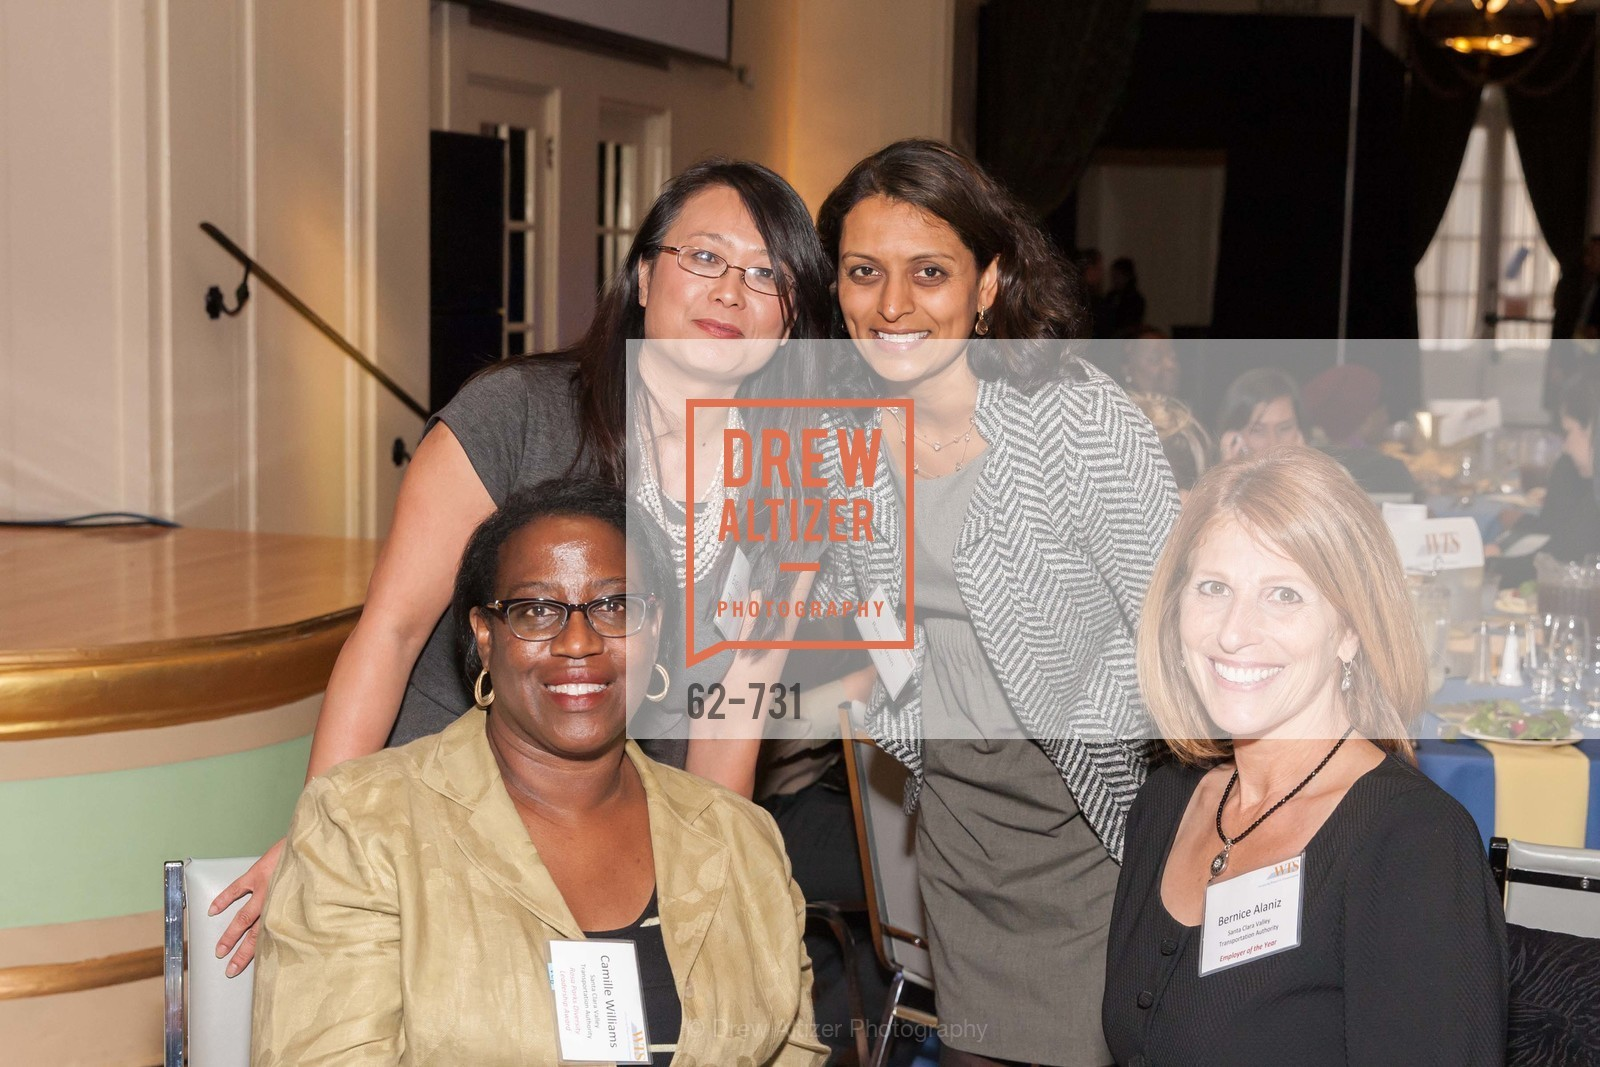 Camille Williams, Evelyn Tran, Ratna Amin, Bernice Alaniz, WOMEN'S TRANSPORTATION SEMINAR SF Bay Area Chapter Annual Scholarship Awards, US, May 15th, 2015,Drew Altizer, Drew Altizer Photography, full-service event agency, private events, San Francisco photographer, photographer California